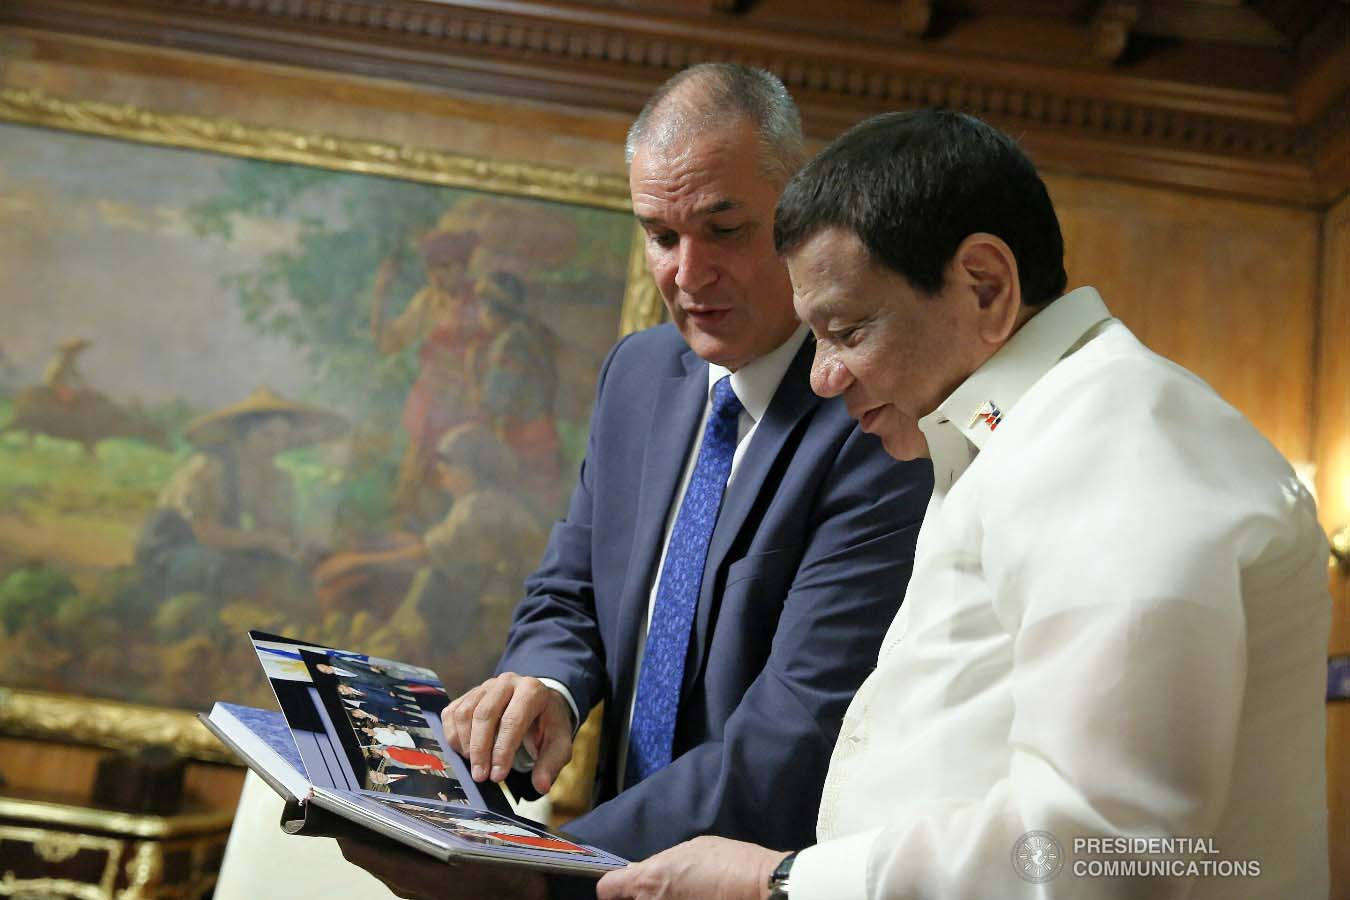 President Rodrigo Roa Duterte takes time to appreciate the token presented by Ambassador of Israel to the Philippines Rafael Harpaz who paid a courtesy call on the President at the Malacañan Palace on January 31, 2019. ALBERT ALCAIN/PRESIDENTIAL PHOTO